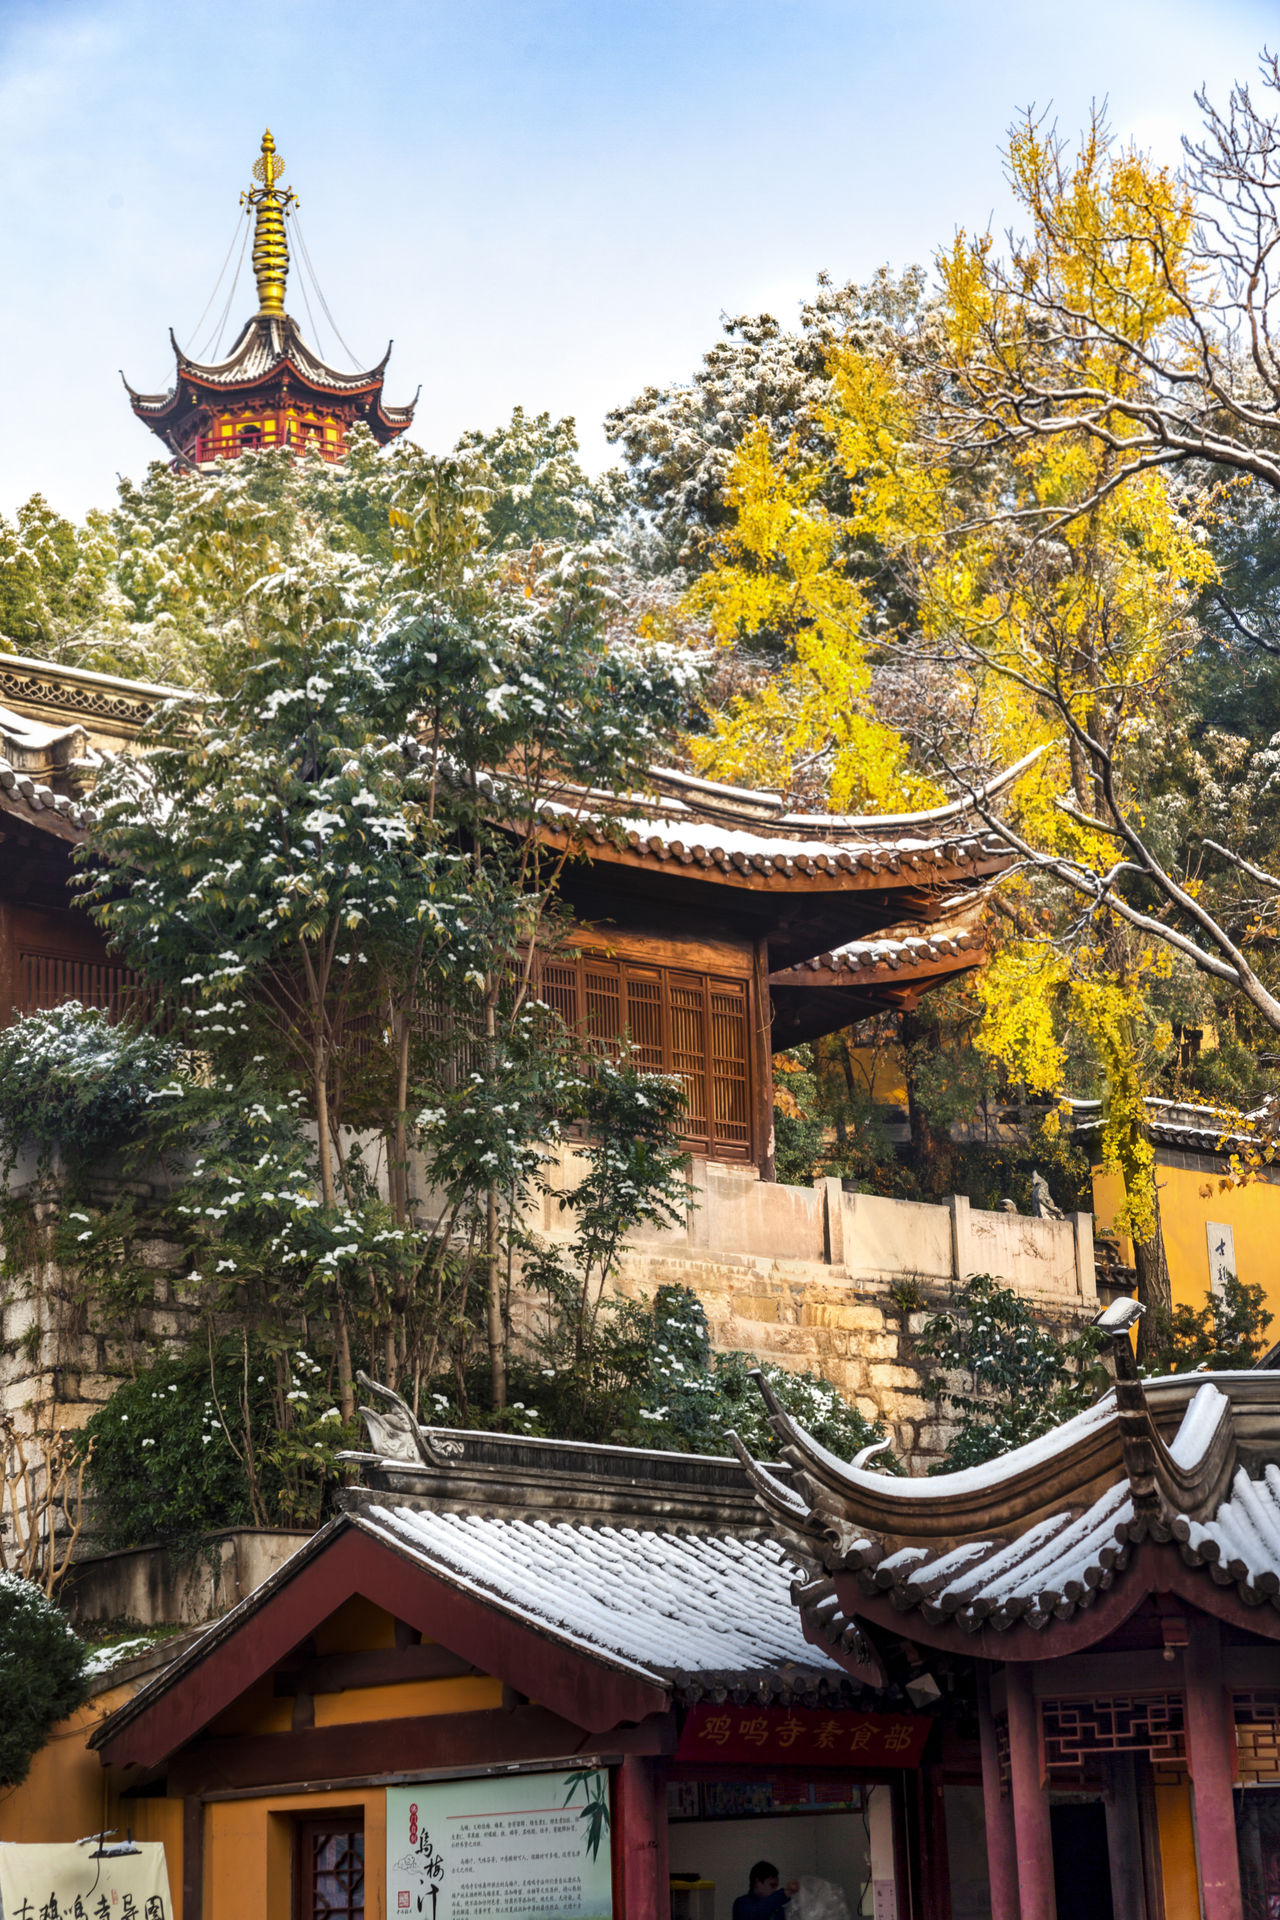 Nanjing JiMing Temple Famous Places Tourist Attractions Tourist Destination Architecture Building Exterior Built Structure City Day Ginkgo Trees Ginkgo Trees Gold Colored No People Outdoors Pagoda Place Of Worship Roof Sky Snow Tradition Tree